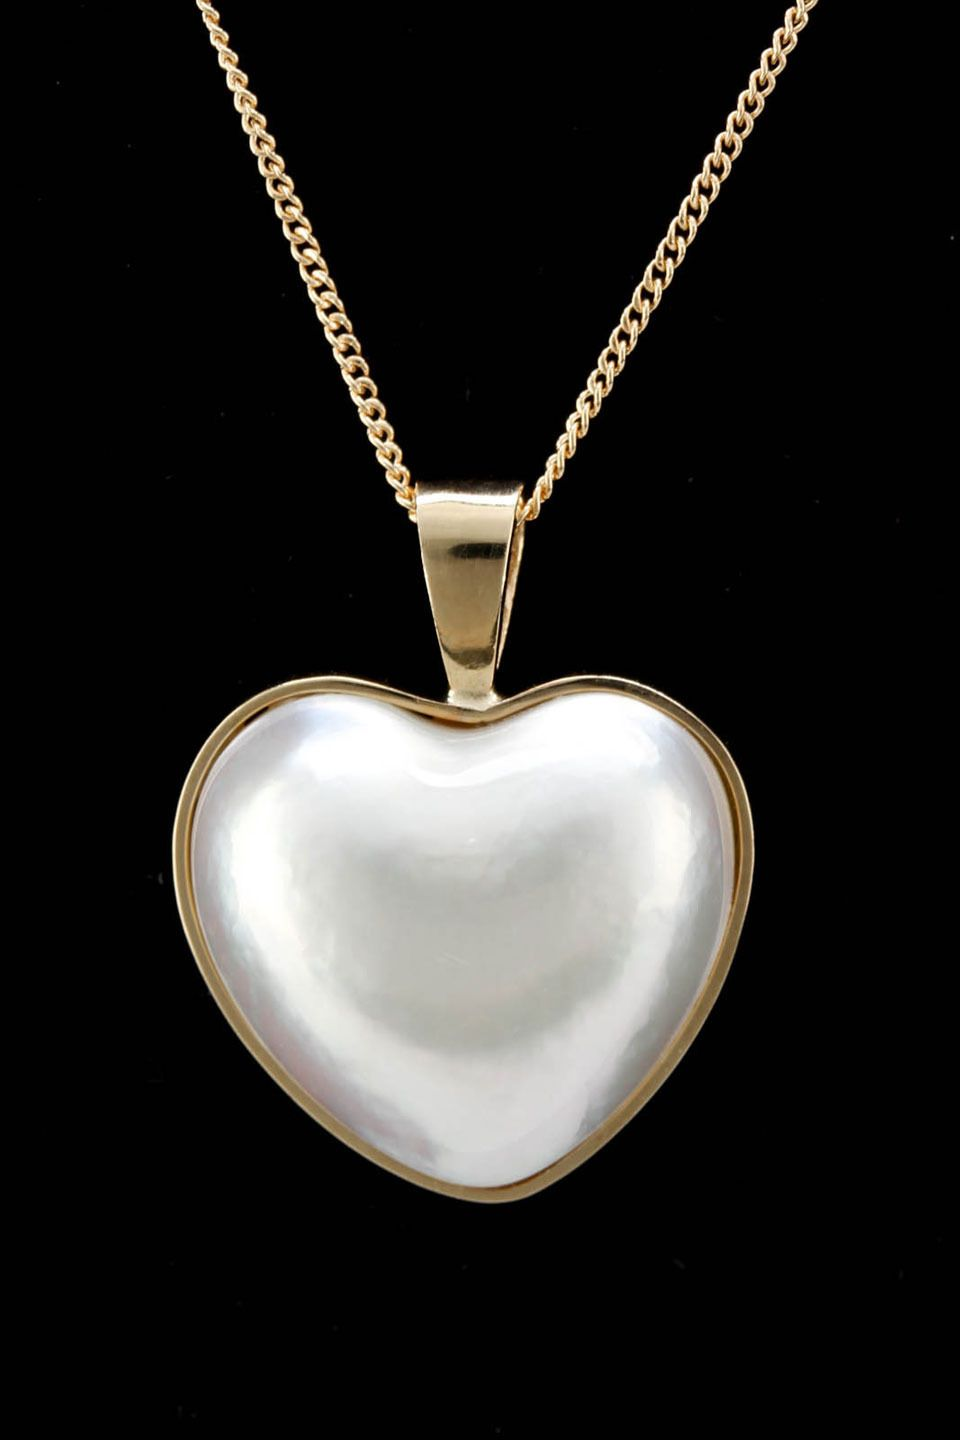 Heart pearl necklace - Beyond the Rack | Pearl necklace ideas ...